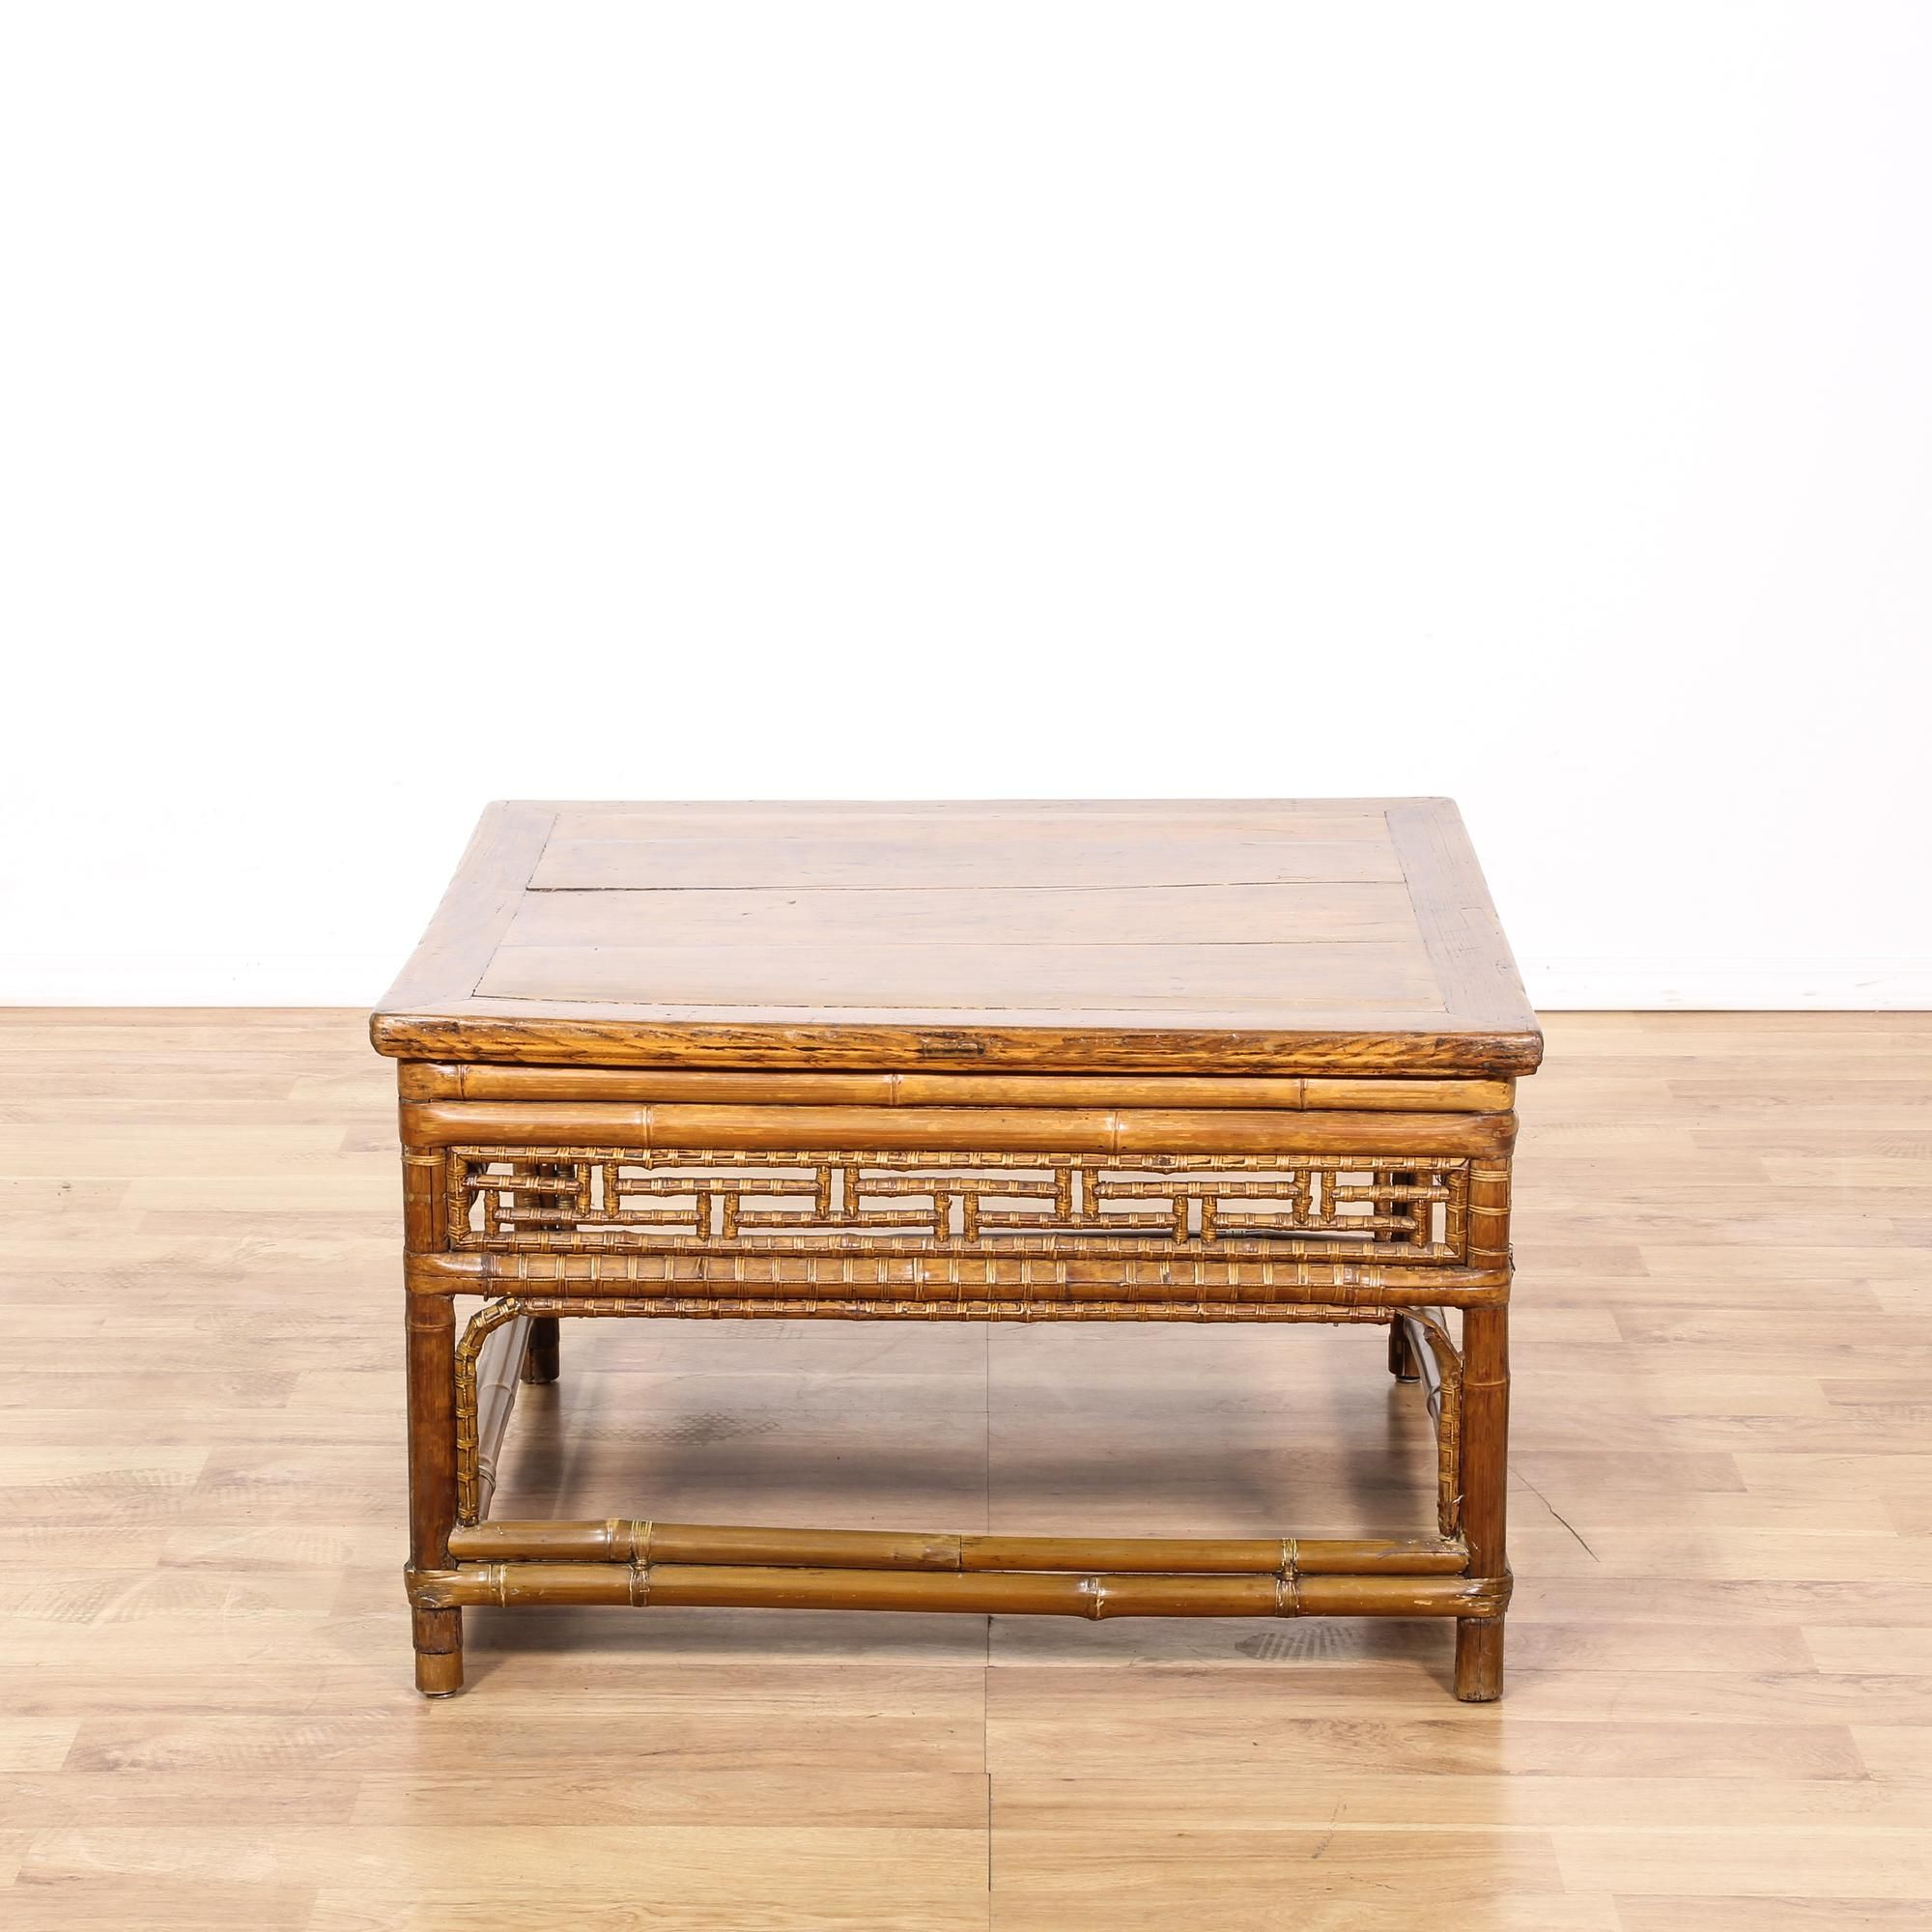 This Square Coffee Table Is Featured In A Synthetic Bamboo With A